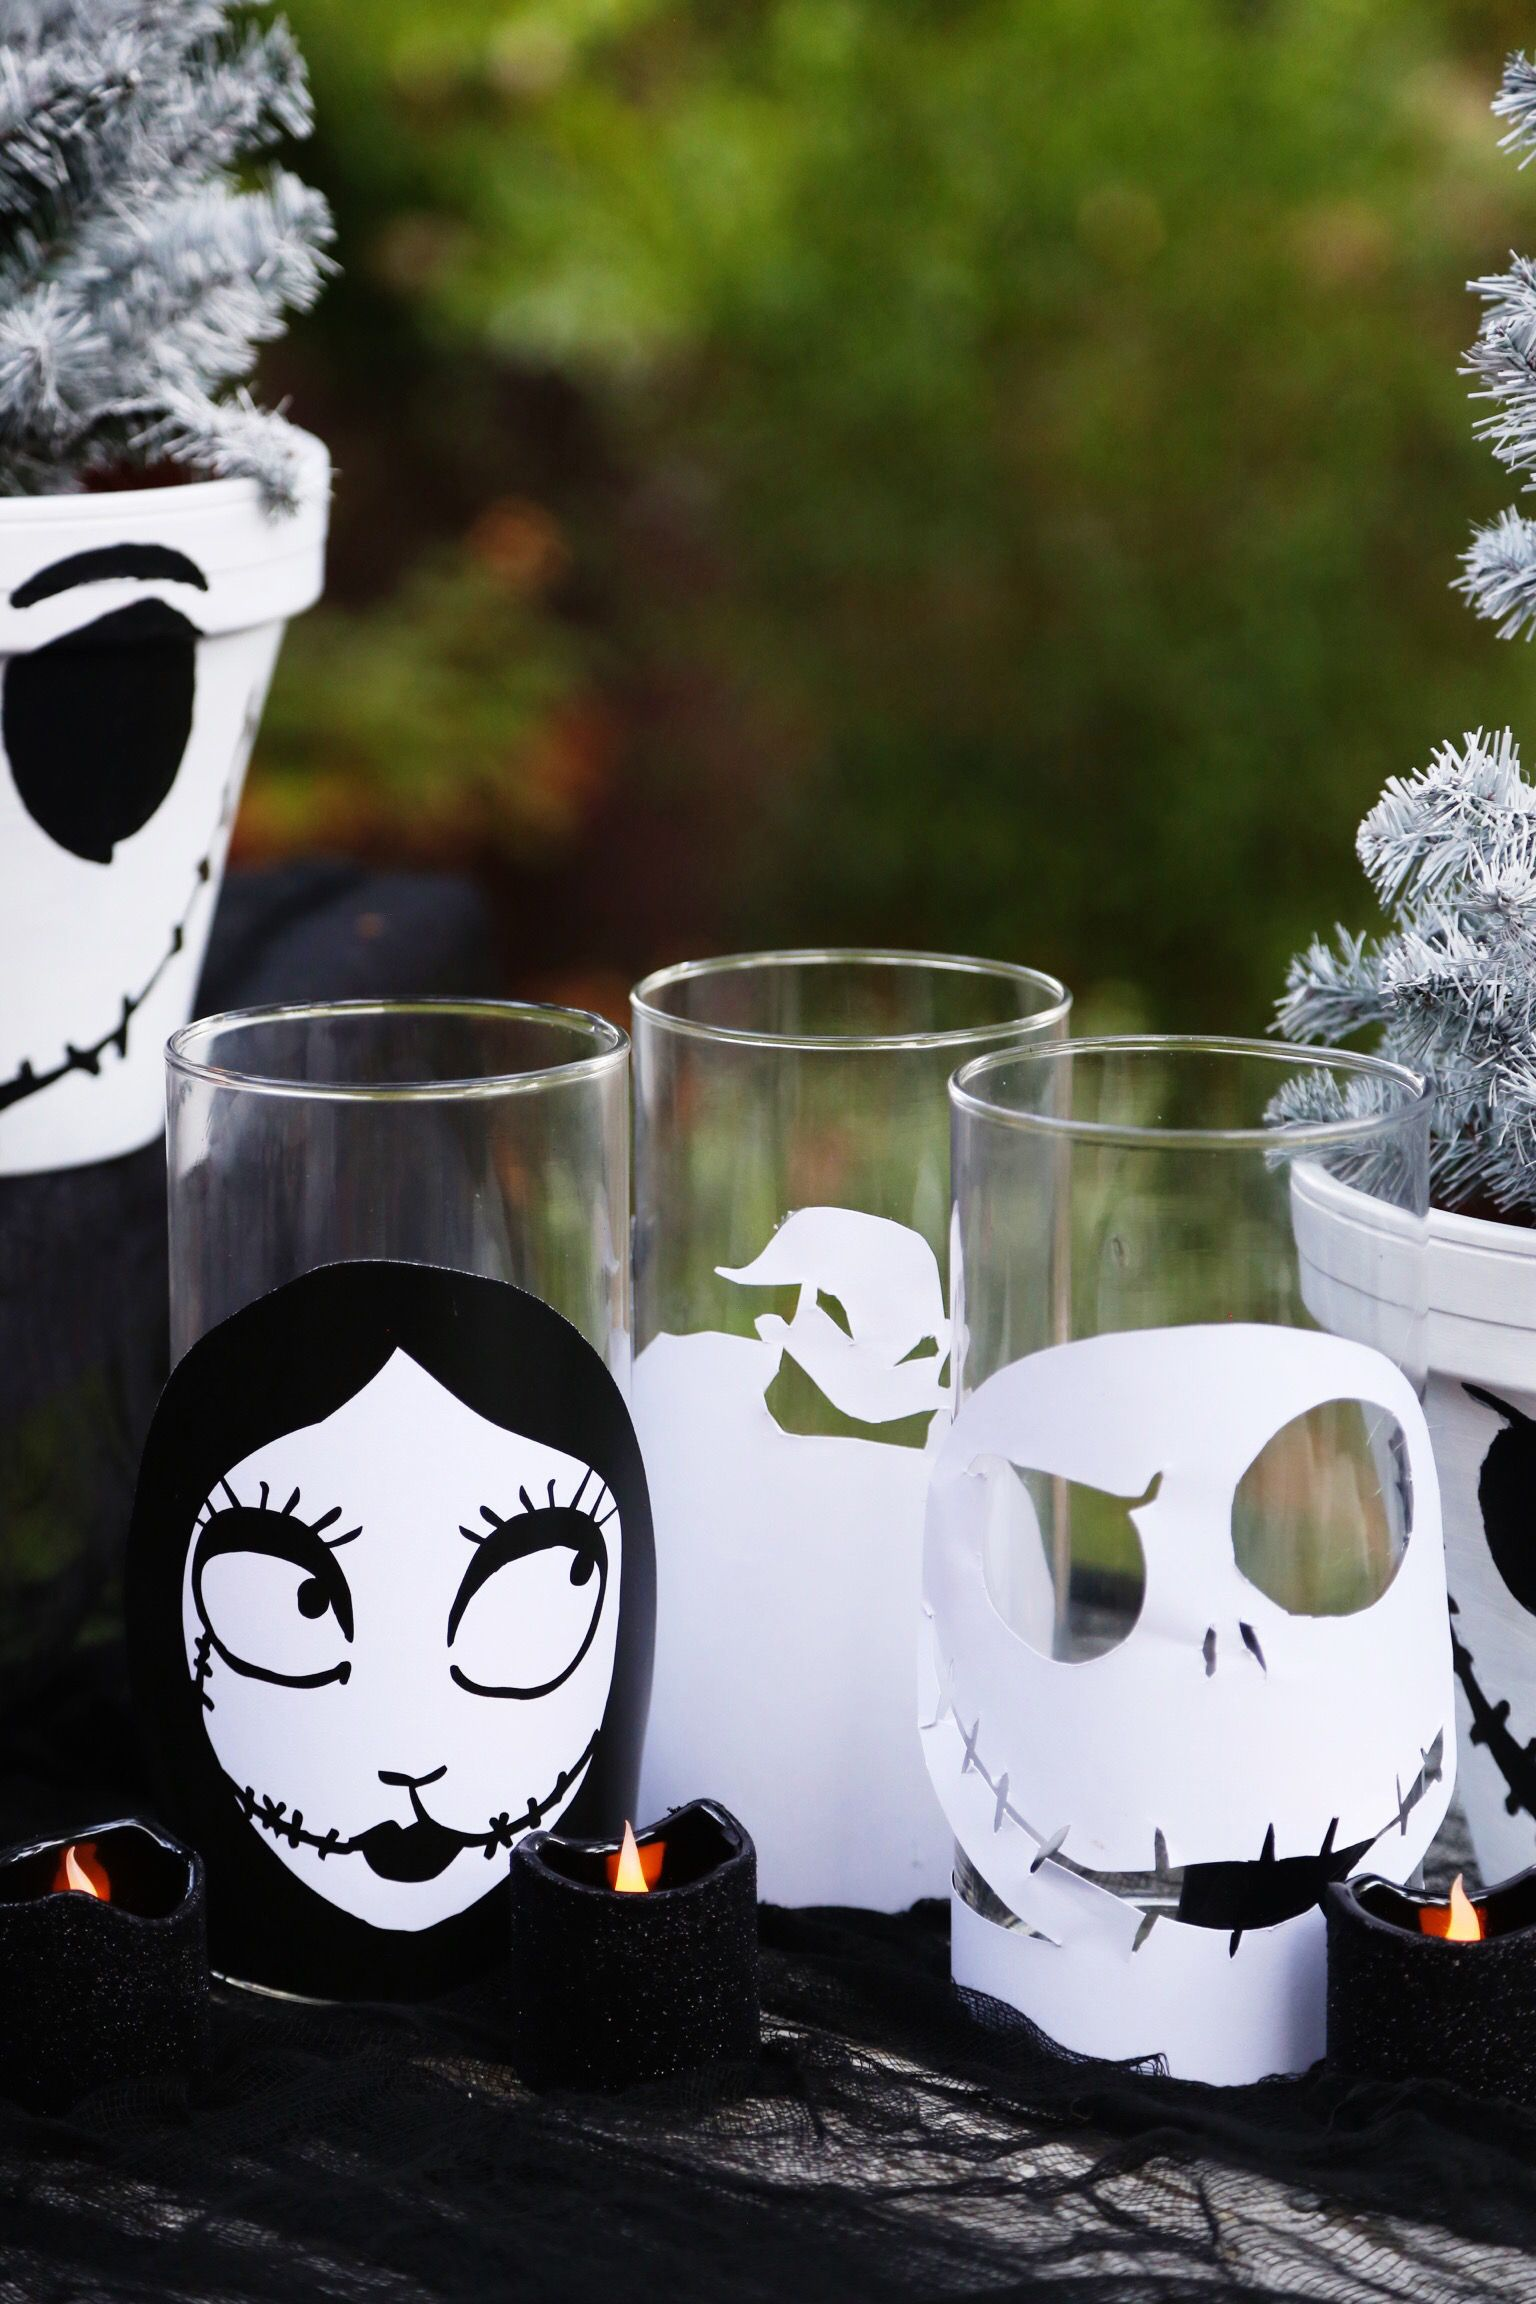 The Nightmare Before Christmas Candle Holders With Images